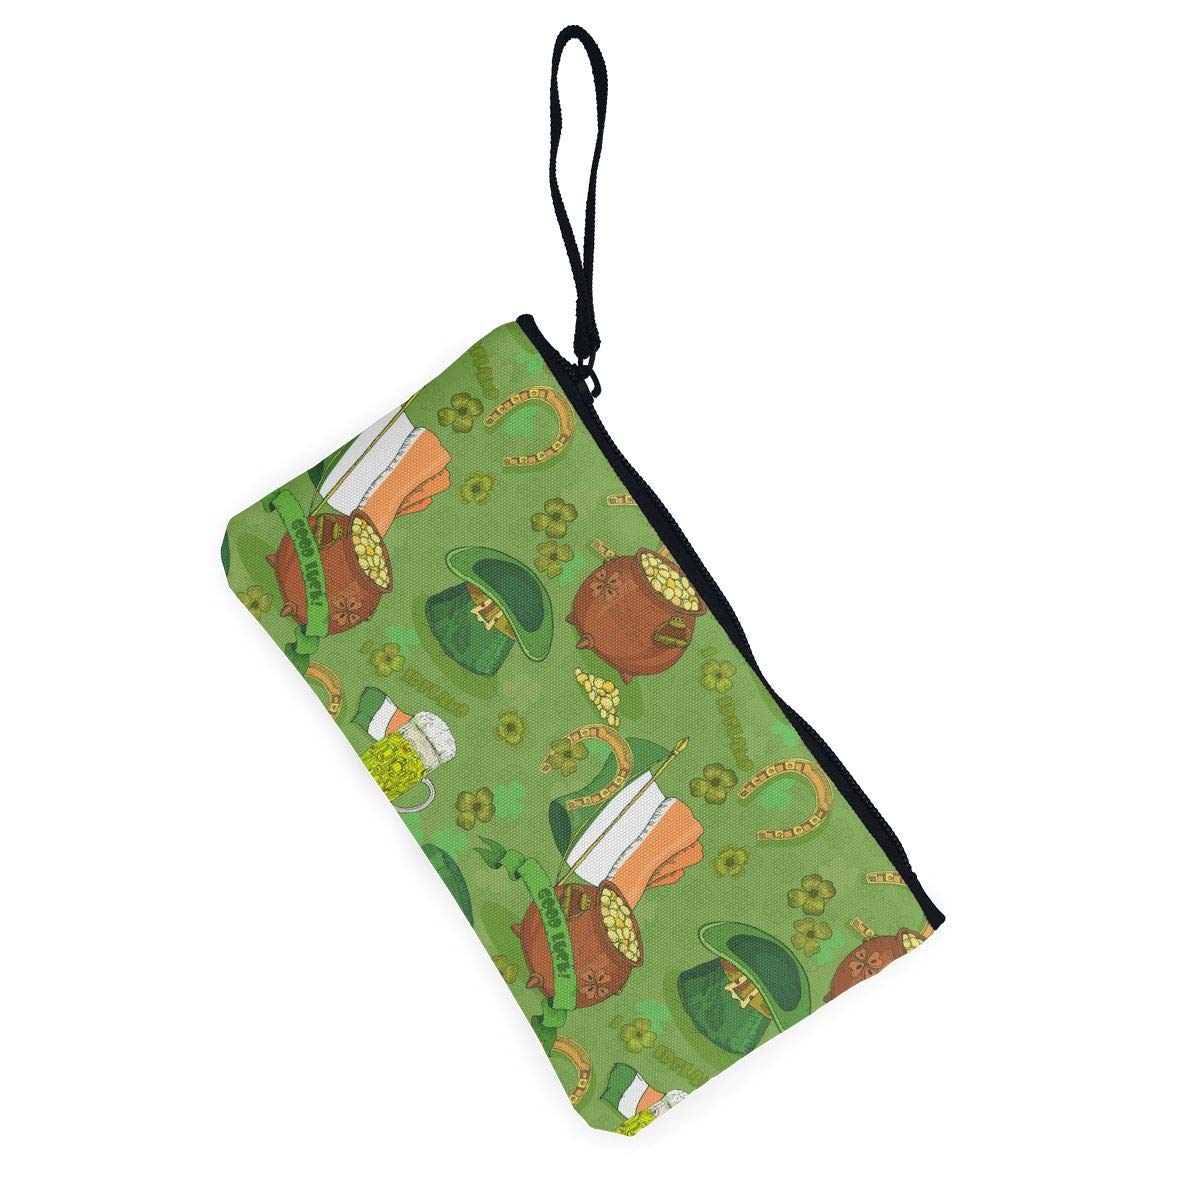 Patricks Day Irish Pattern Canvas Coin Purse Cute Change Pouch Wallet Bag Multifunctional Cellphone Bag with Handle St